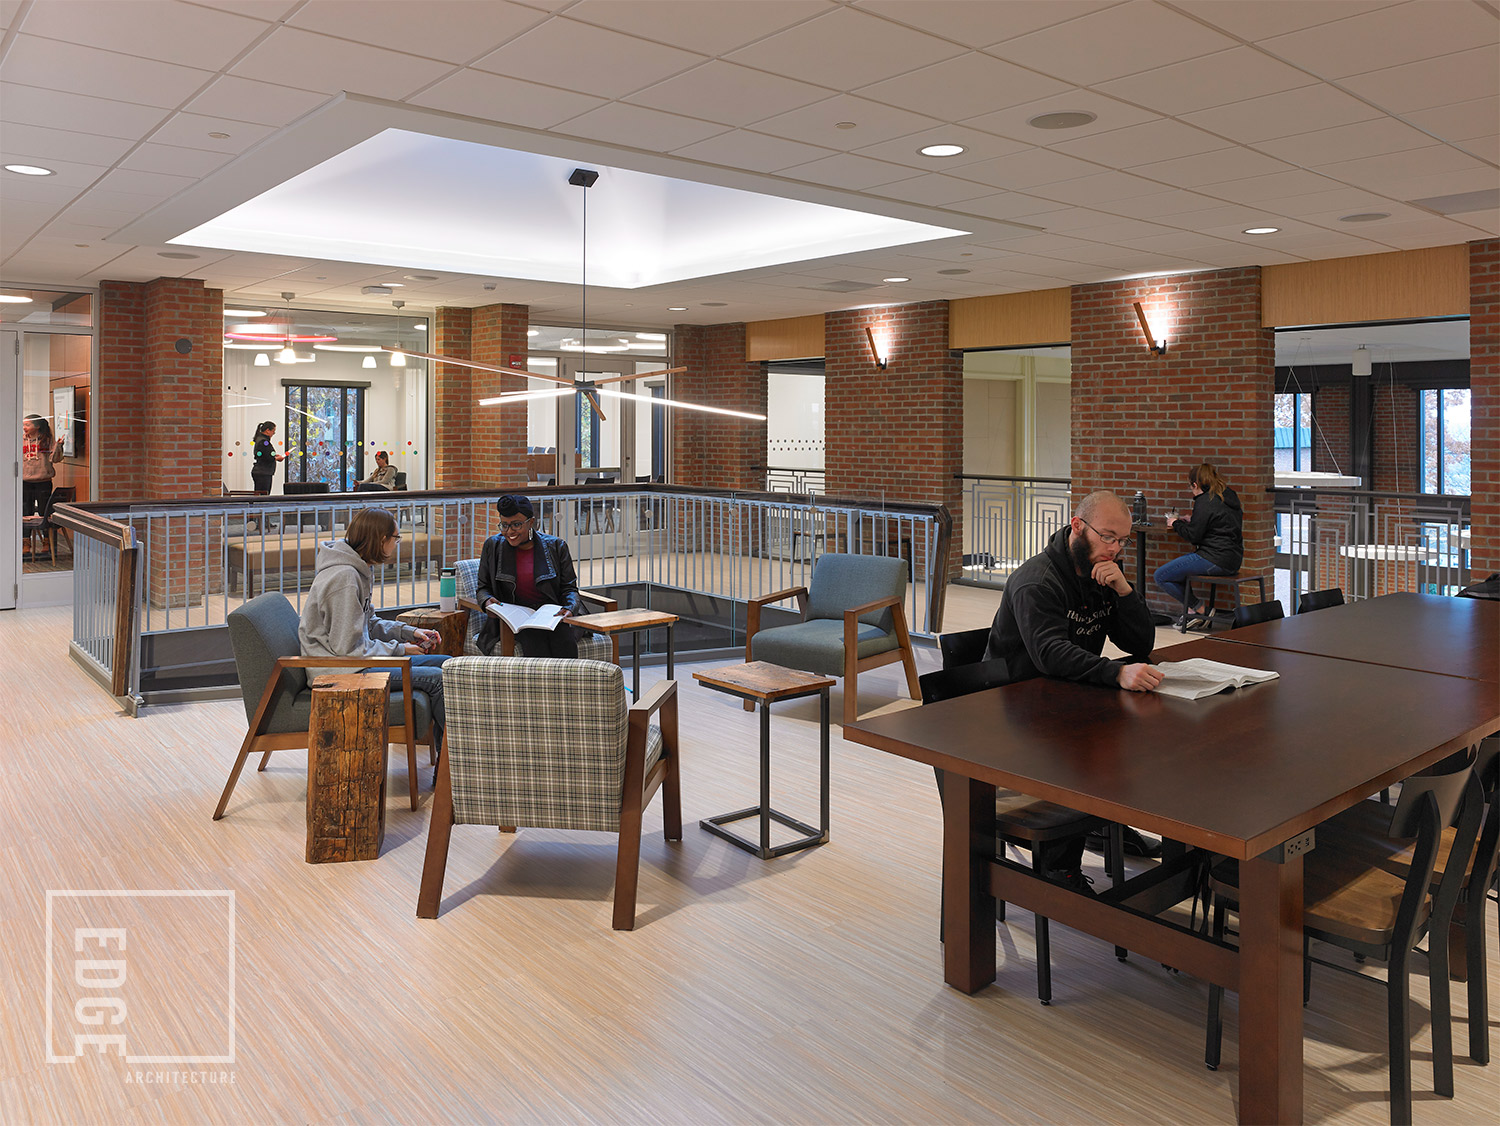 SUNY Geneseo Red Jacket Dining Hall 2nd Floor Upper Dining Hall & Meeting/Gathering Space